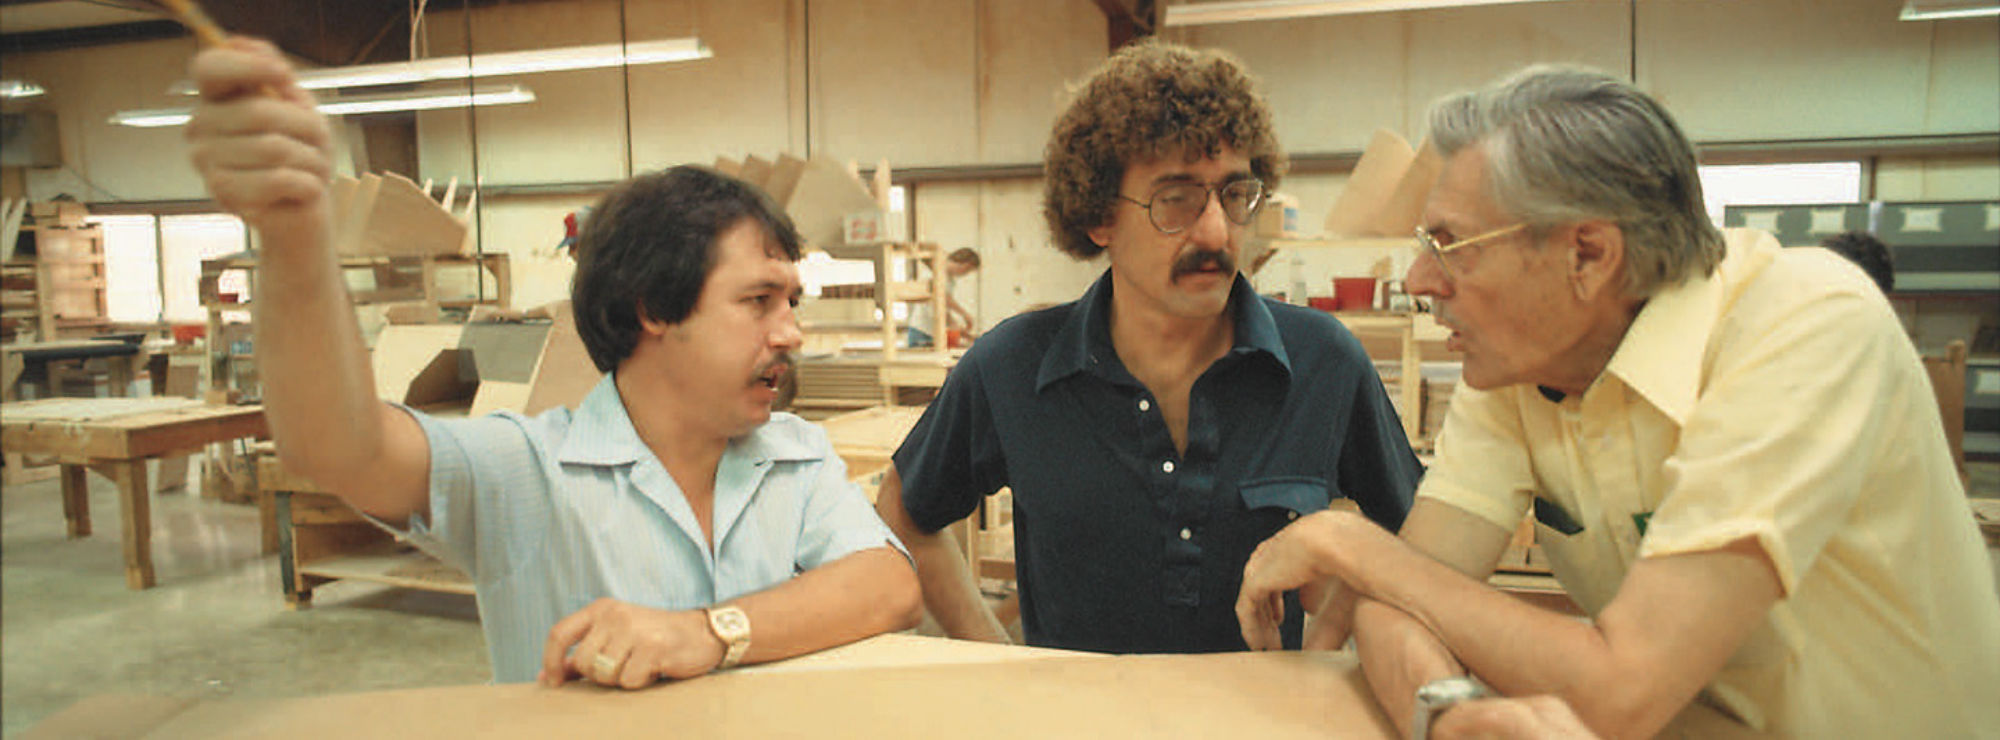 PWK talking with 2 employees in the workshop